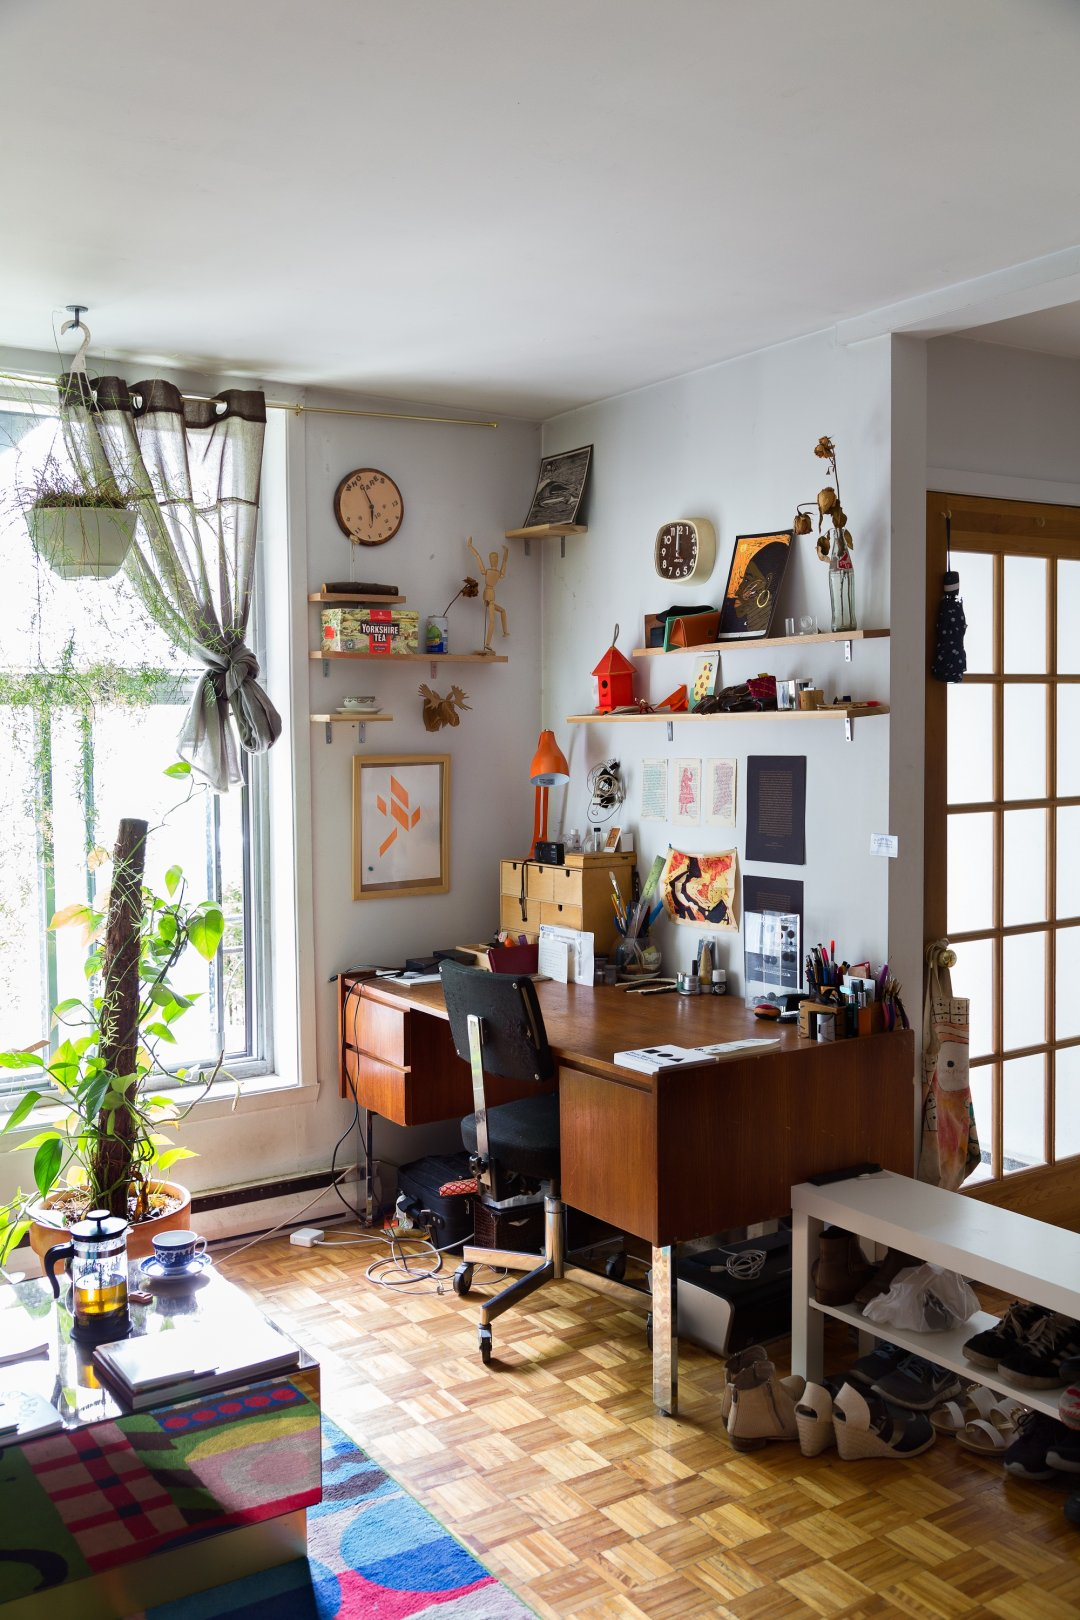 See the full house tour: A Warm, Quirky Modern Apartment in Montral's Mile  End